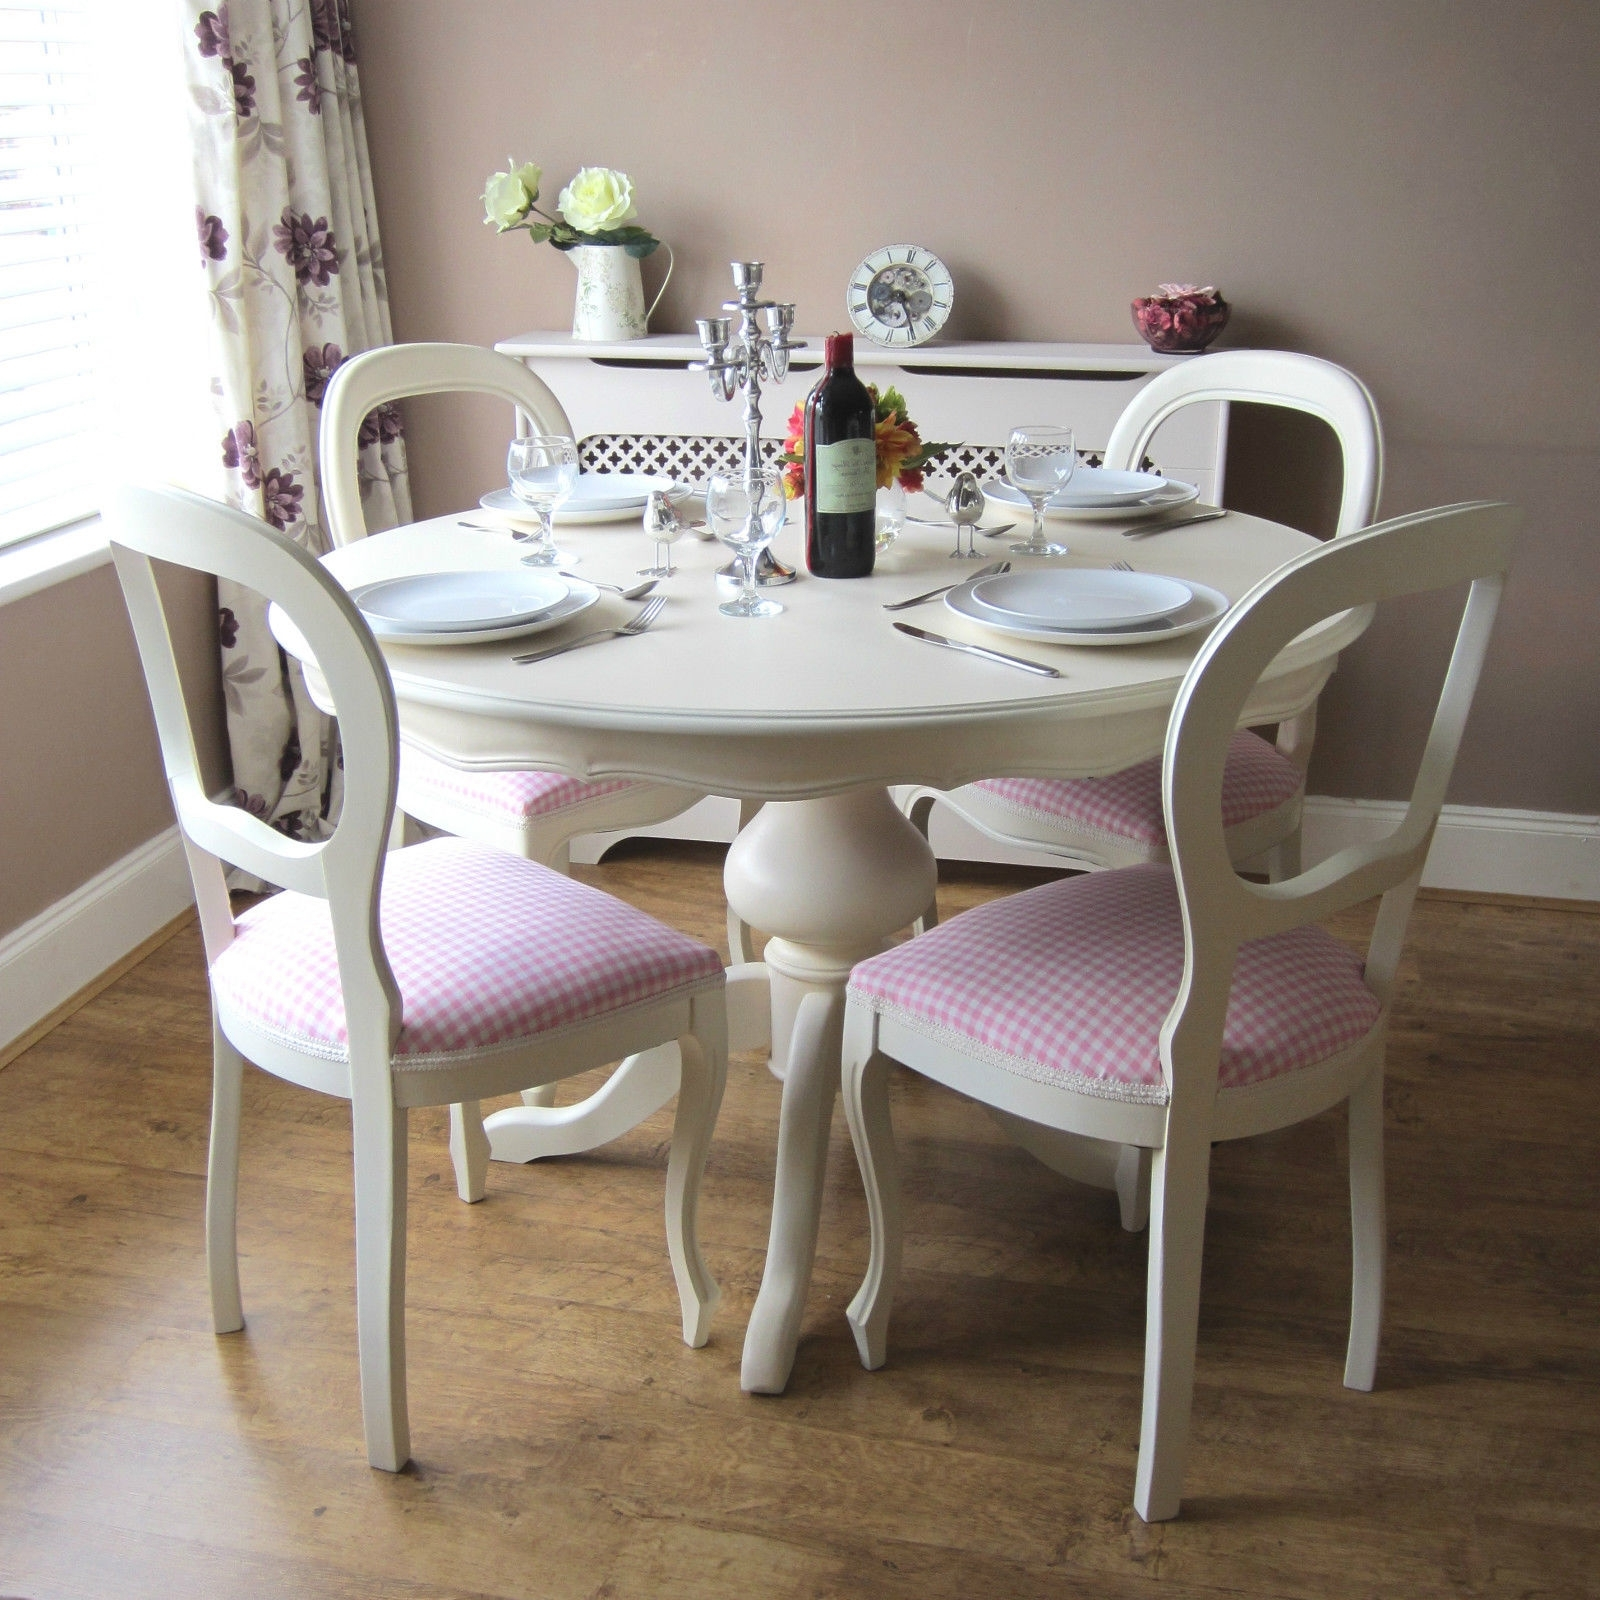 Shabby Chic Table And Chairs (View 24 of 25)